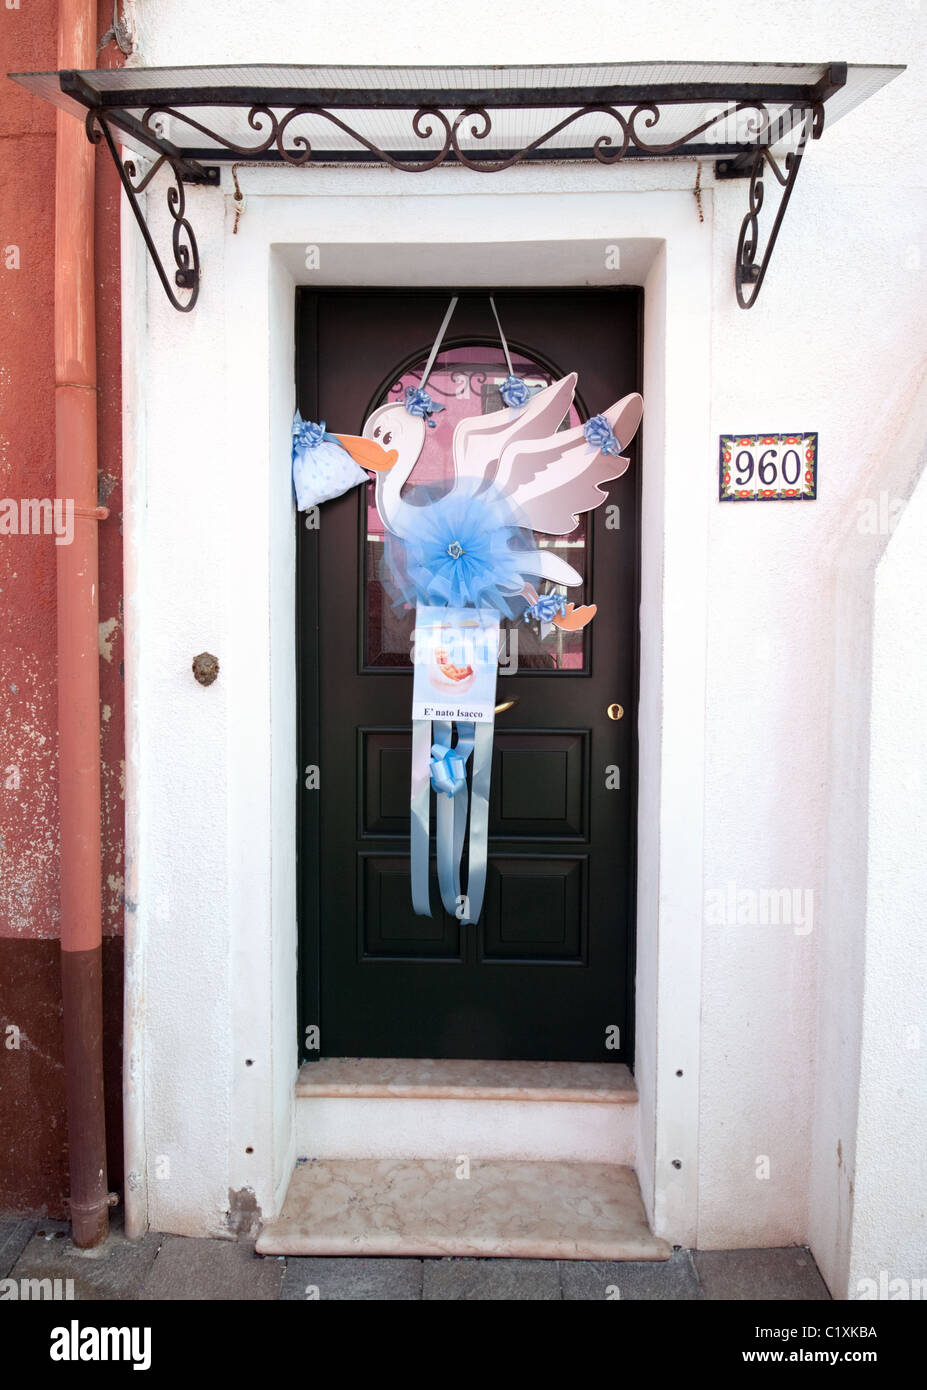 a-stork-sign-hanging-outside-a-house-door-announcing-the-birth-of-C1XKBA.jpg